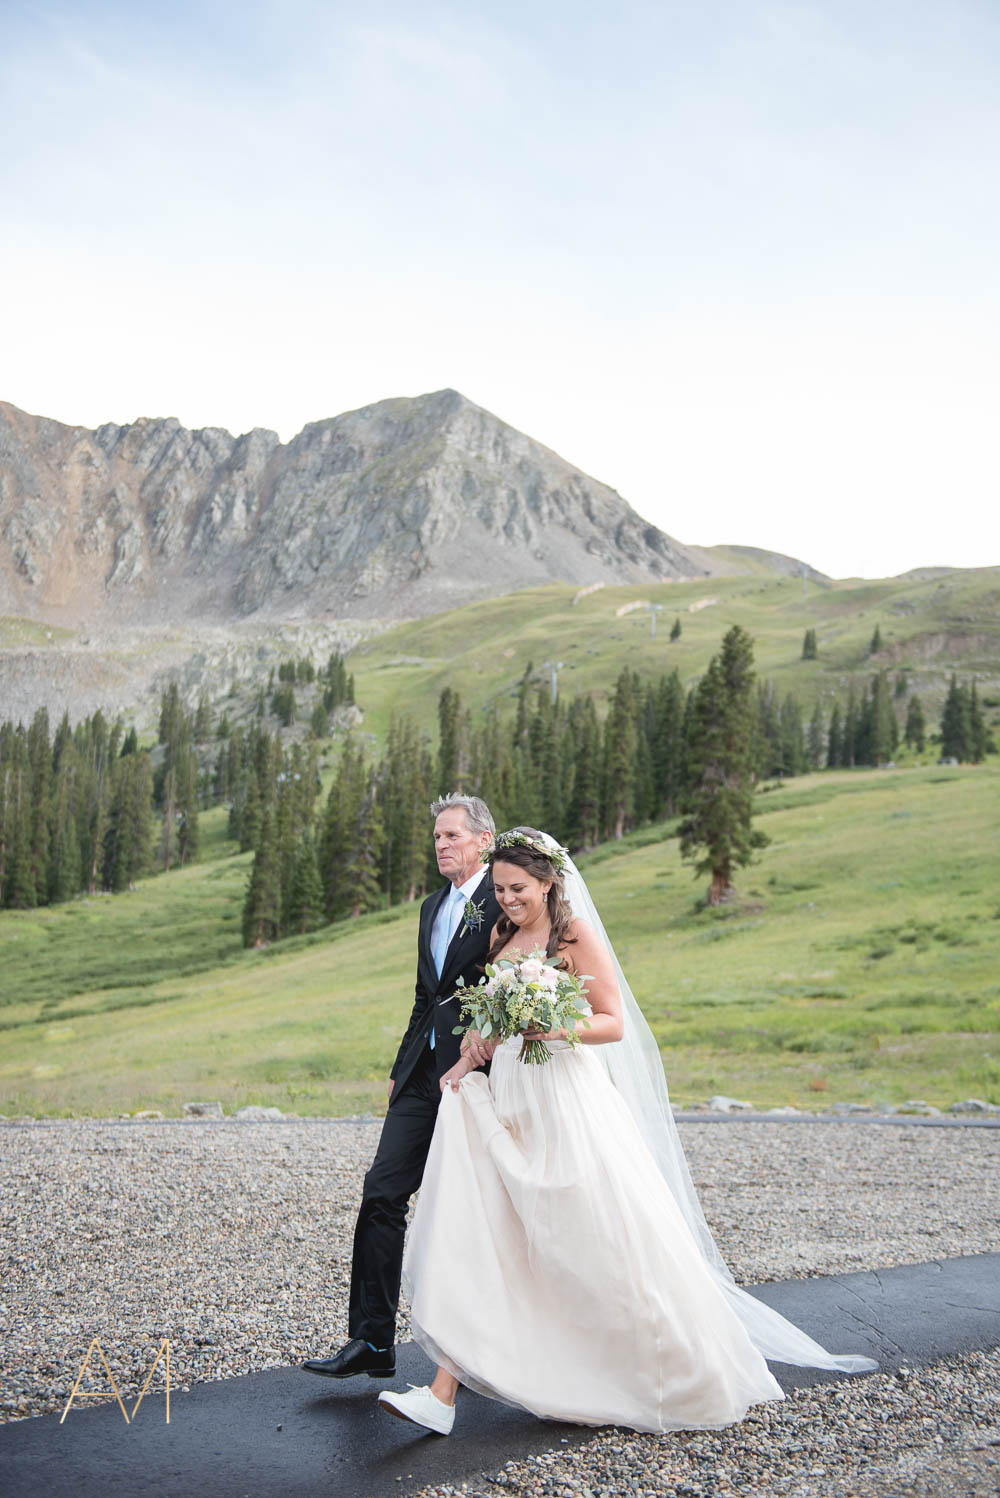 AshleighMillerWeddings-MadeleineAaron-Wedding-ArapahoeBasin-Colorado-3140.jpg